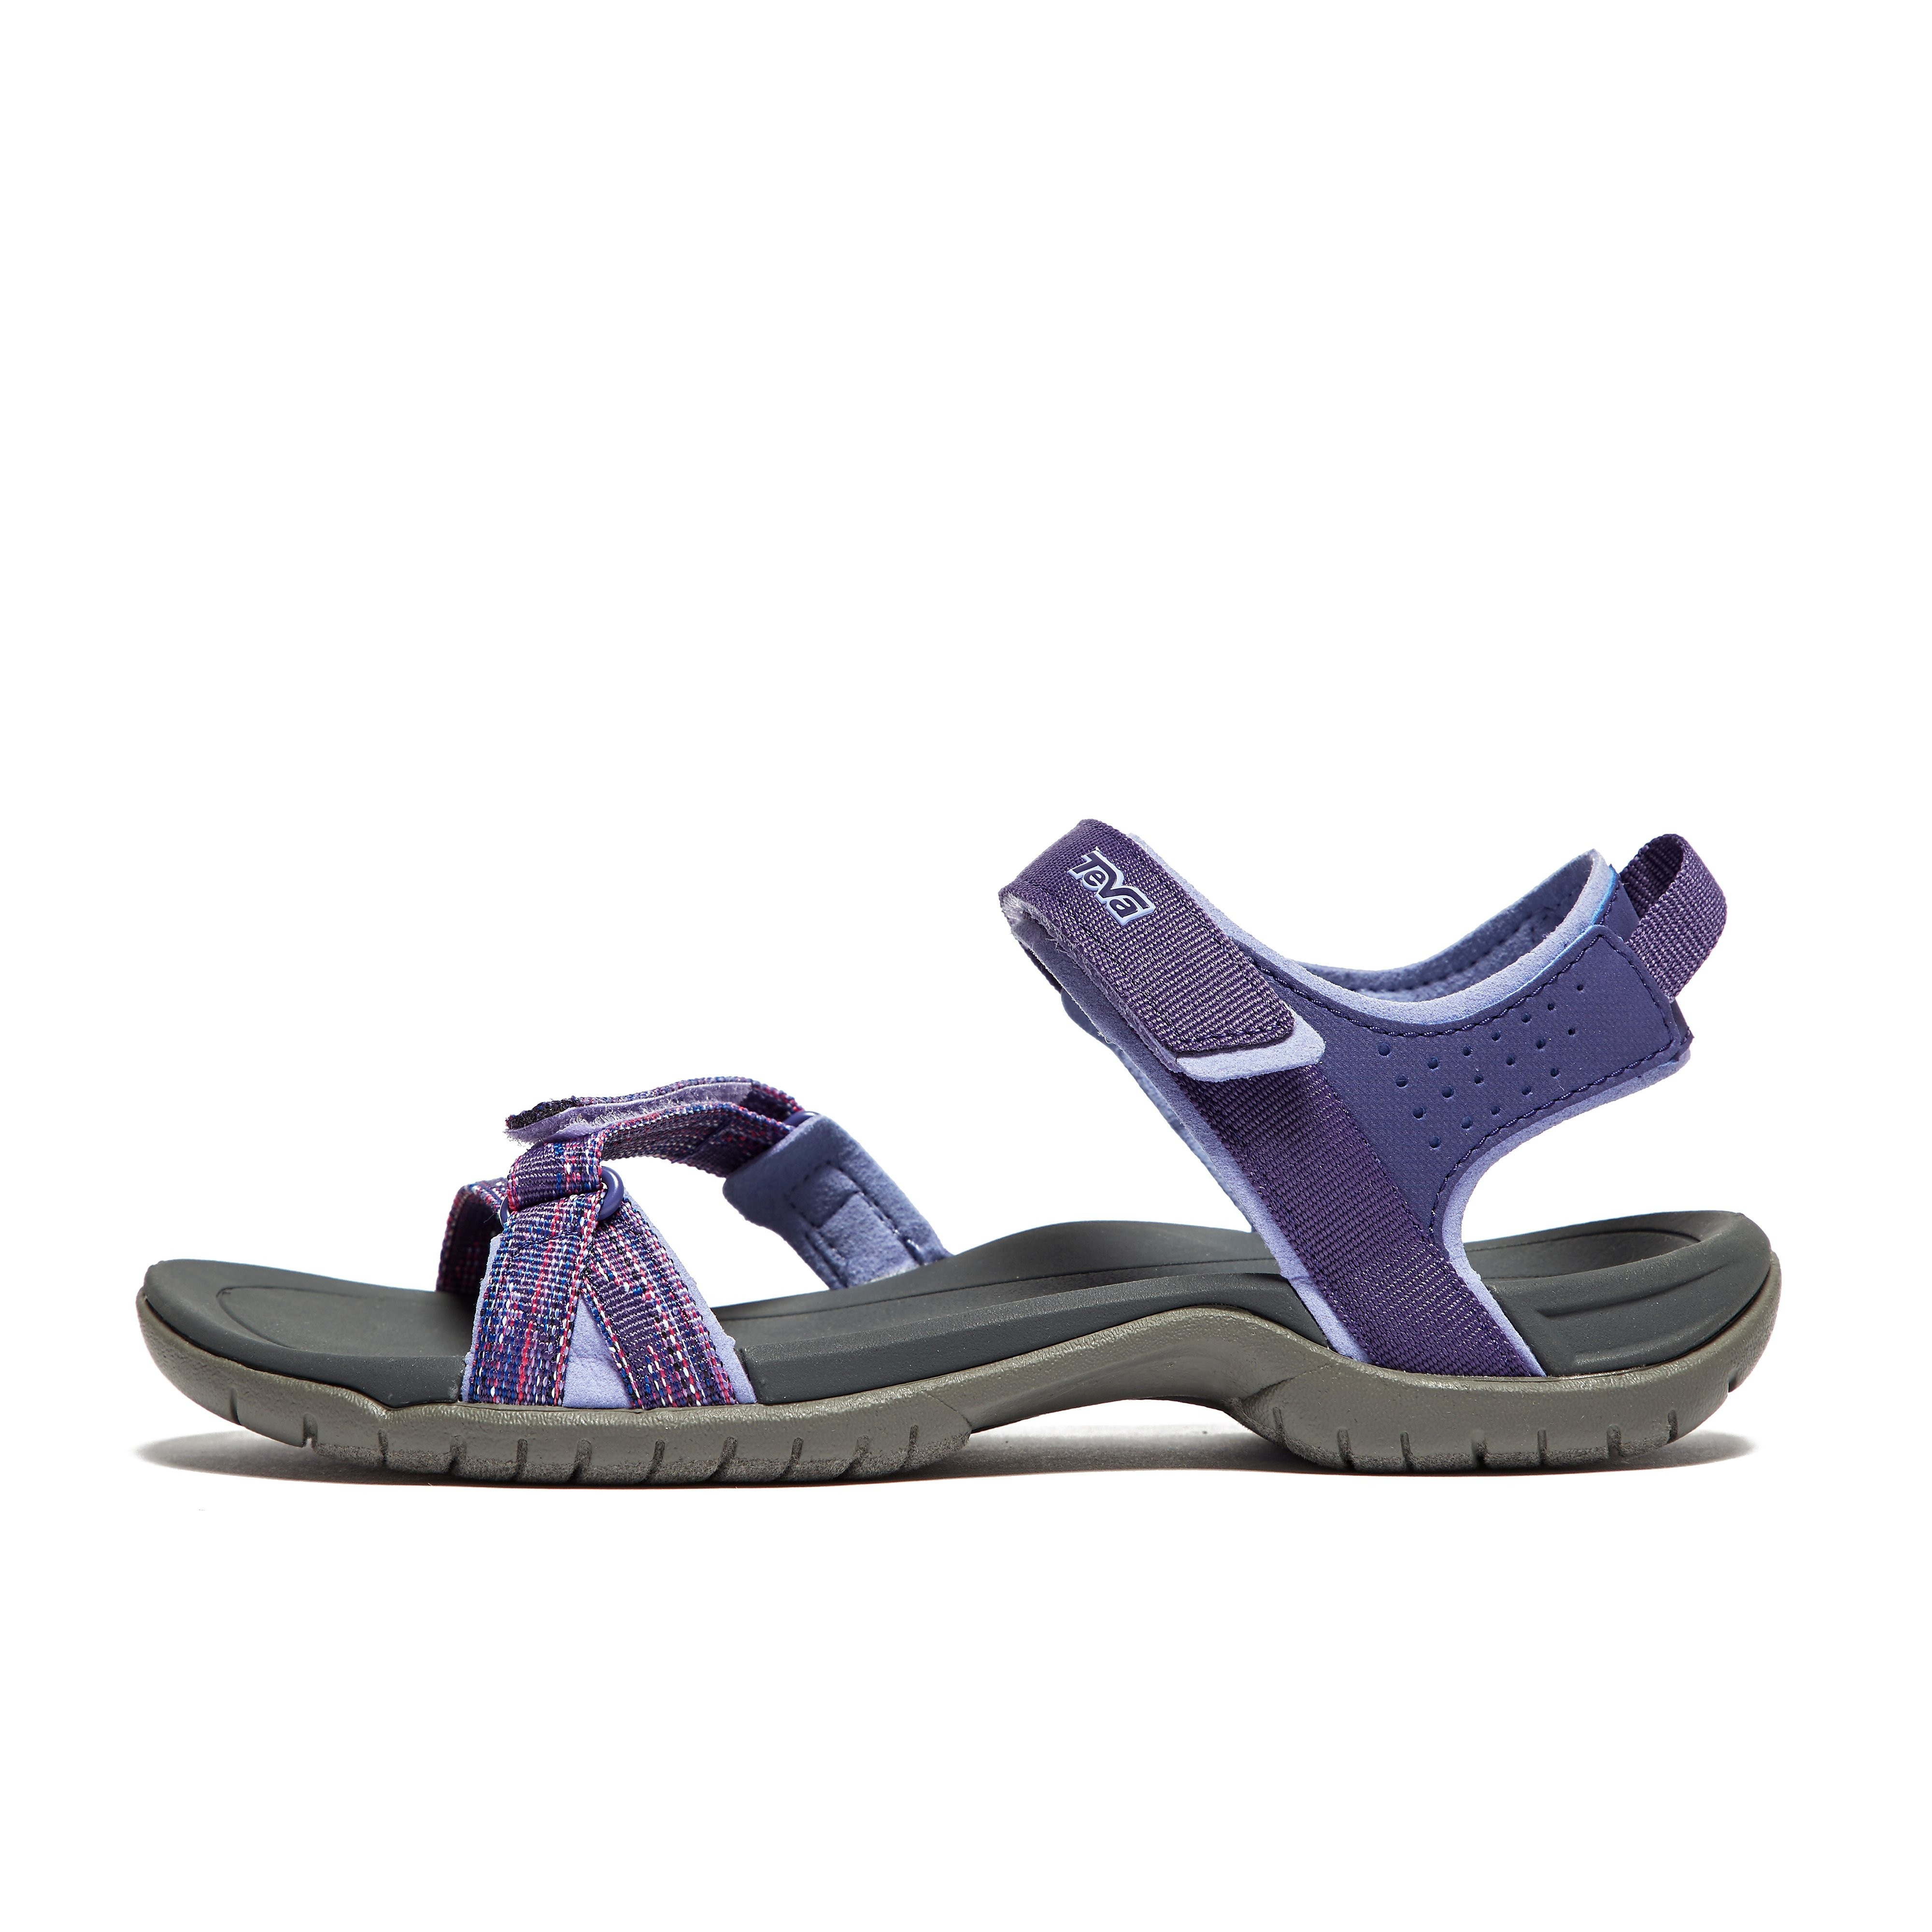 Teva Verra Women's Walking Sandal